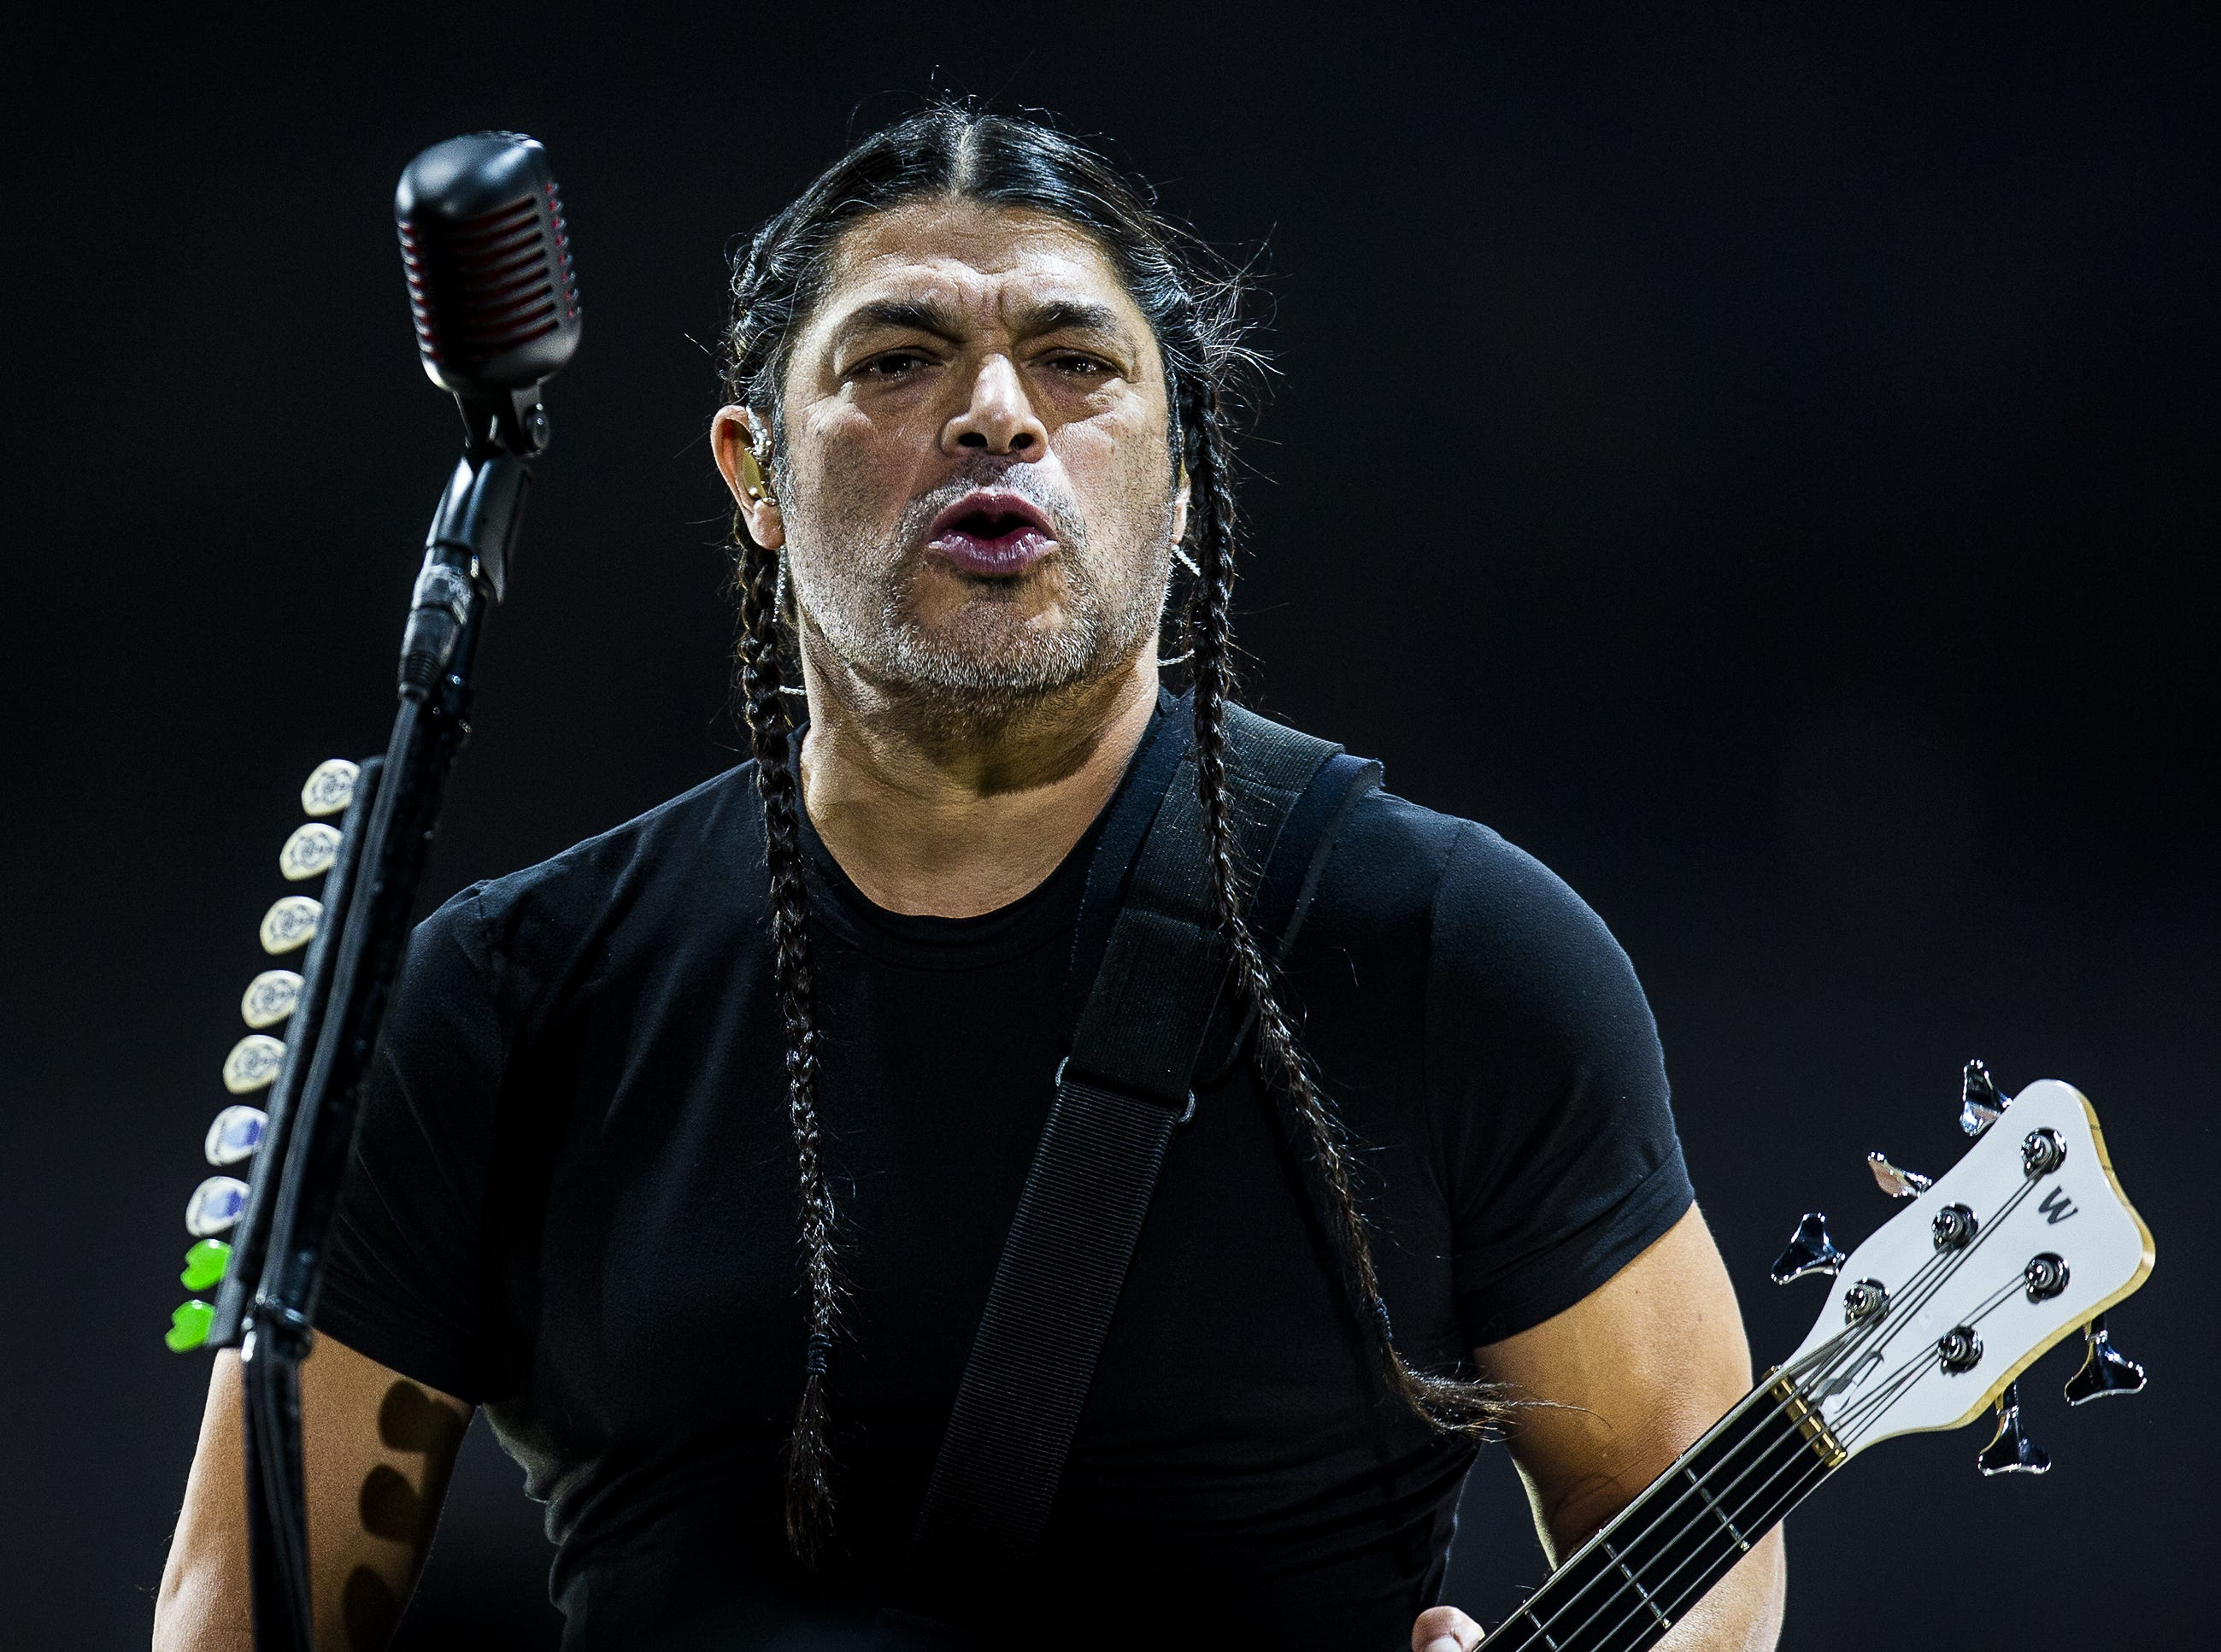 Robert Trujillo, Metallica's bass player, performs at the KFC Yum Center in downtown Louisville, Ky. on Saturday, March 9, 2019.